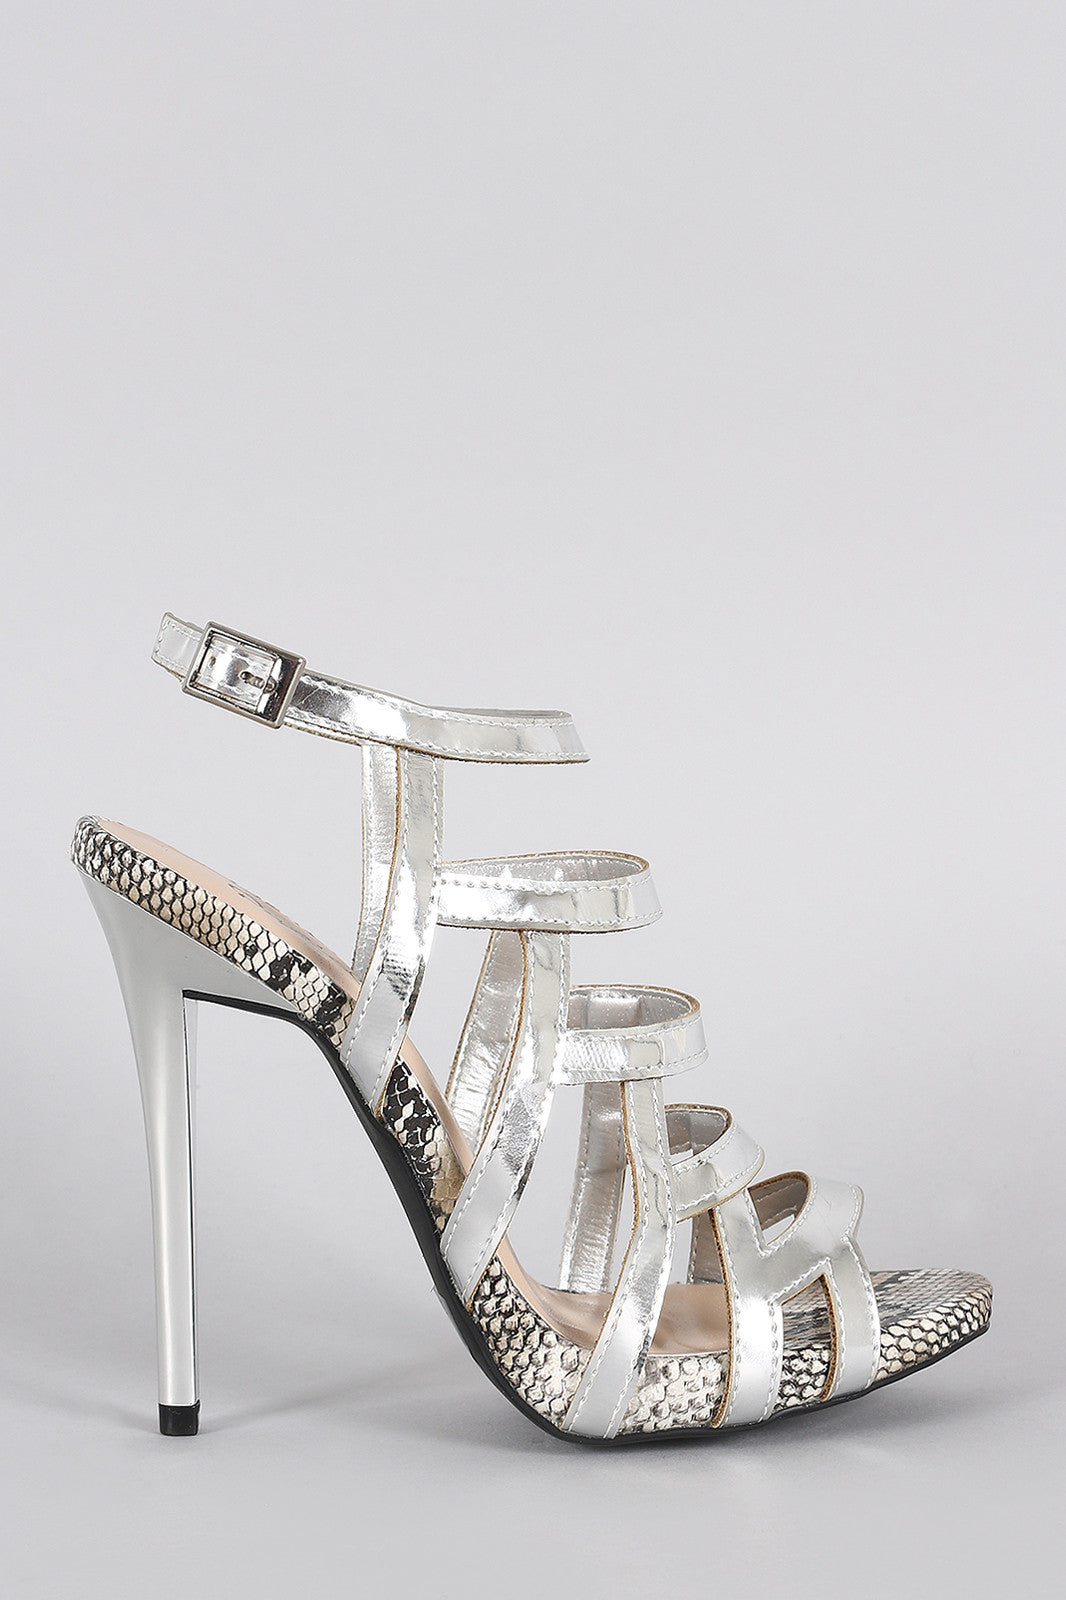 Qupid Metallic Strappy Snake Open Toe Stiletto Heel - Thick 'N' Curvy Shop - 4